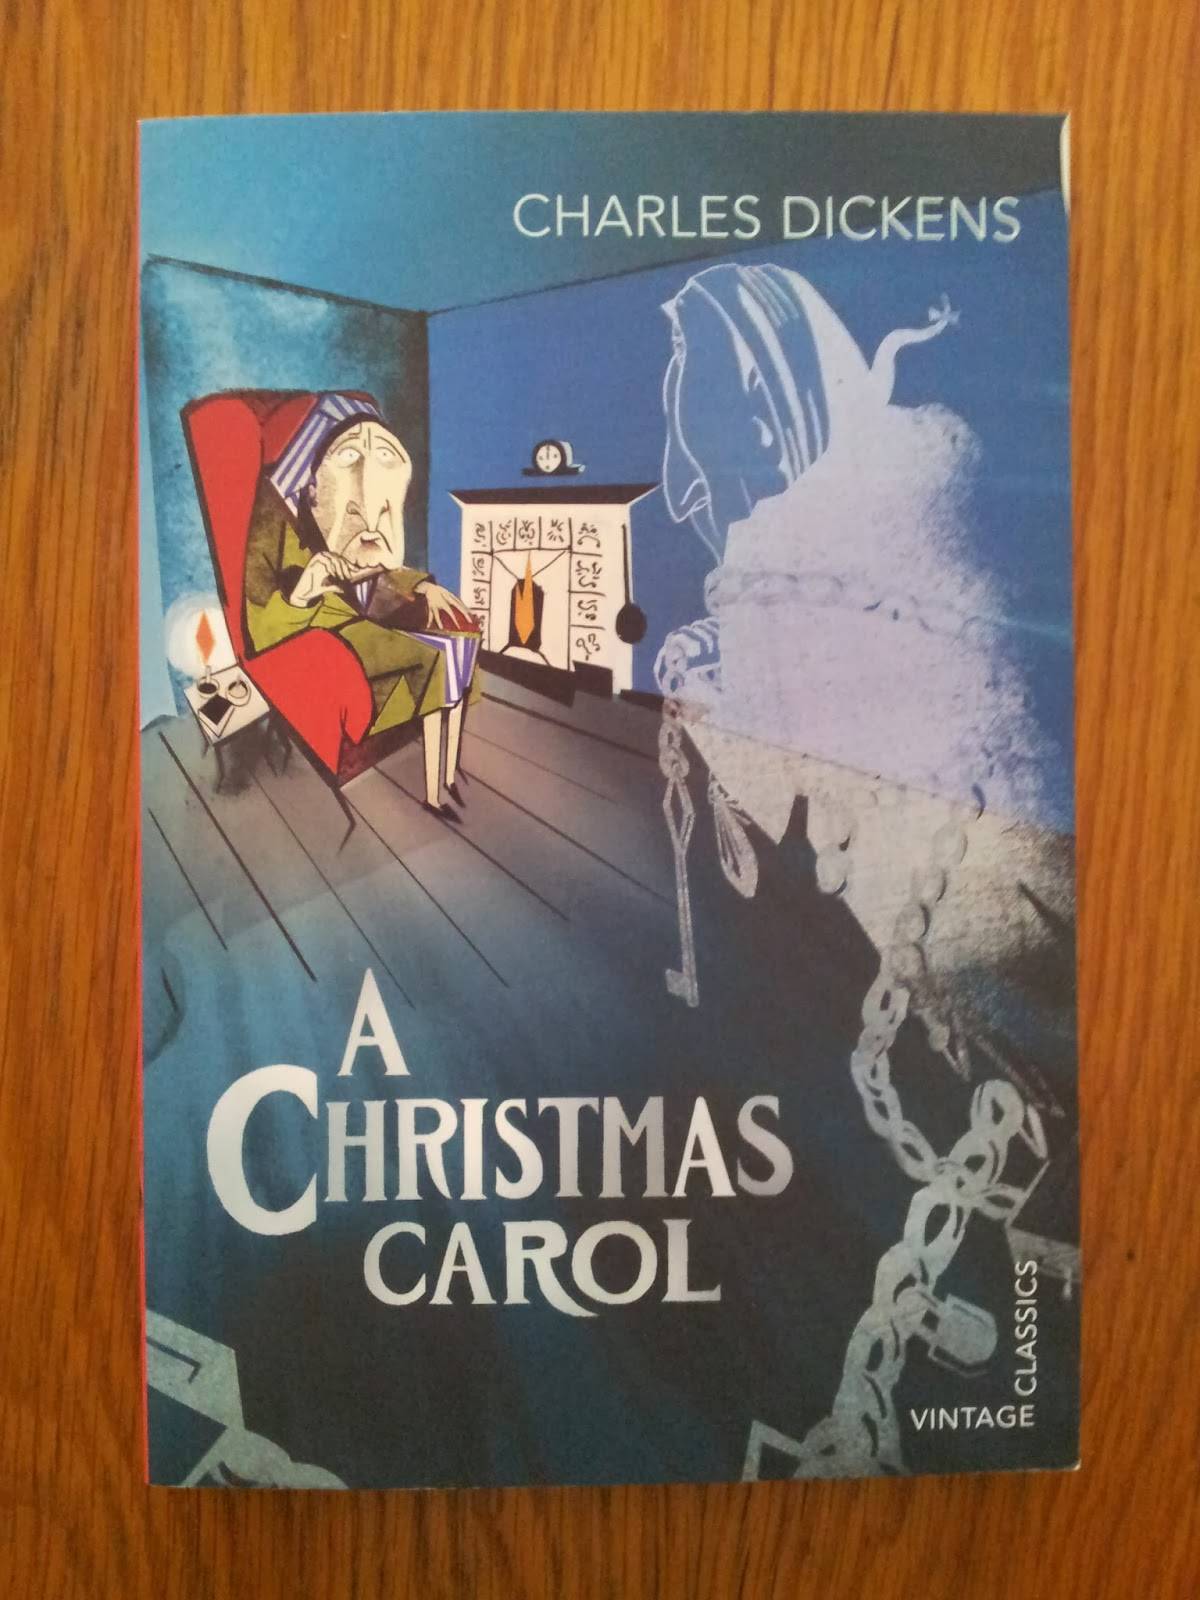 One Thousand Words: A Christmas Carol by Charles Dickens Book Thoughts